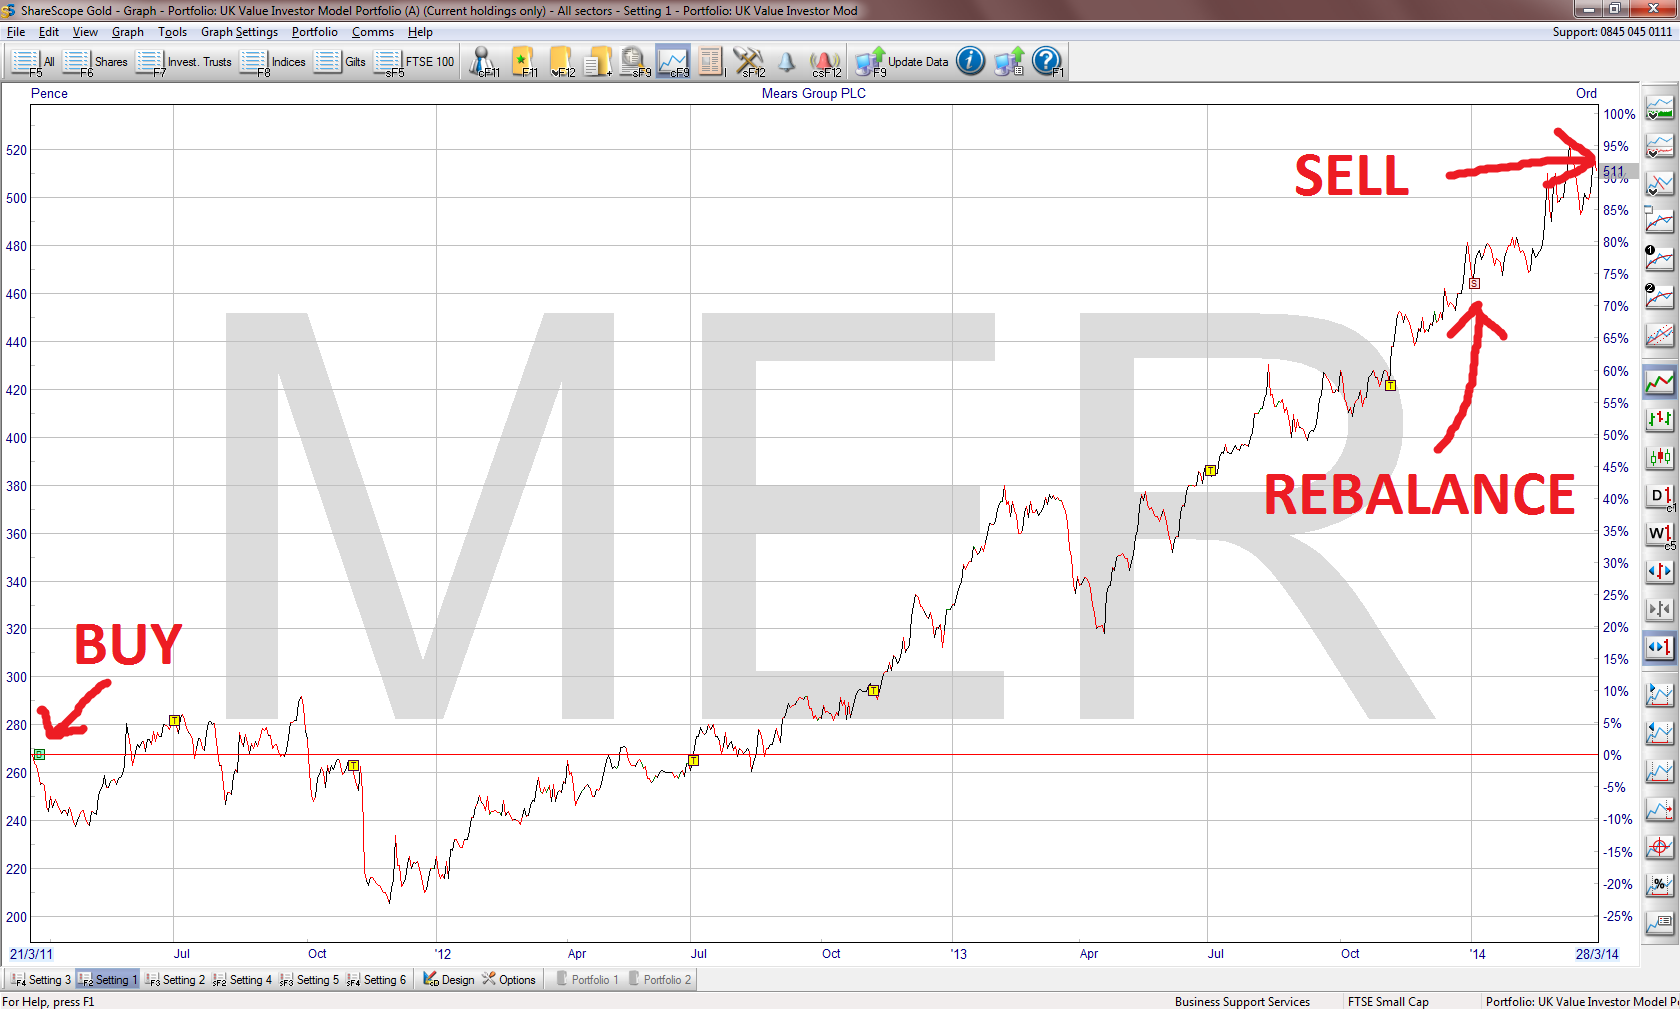 Mears share price 2014 03